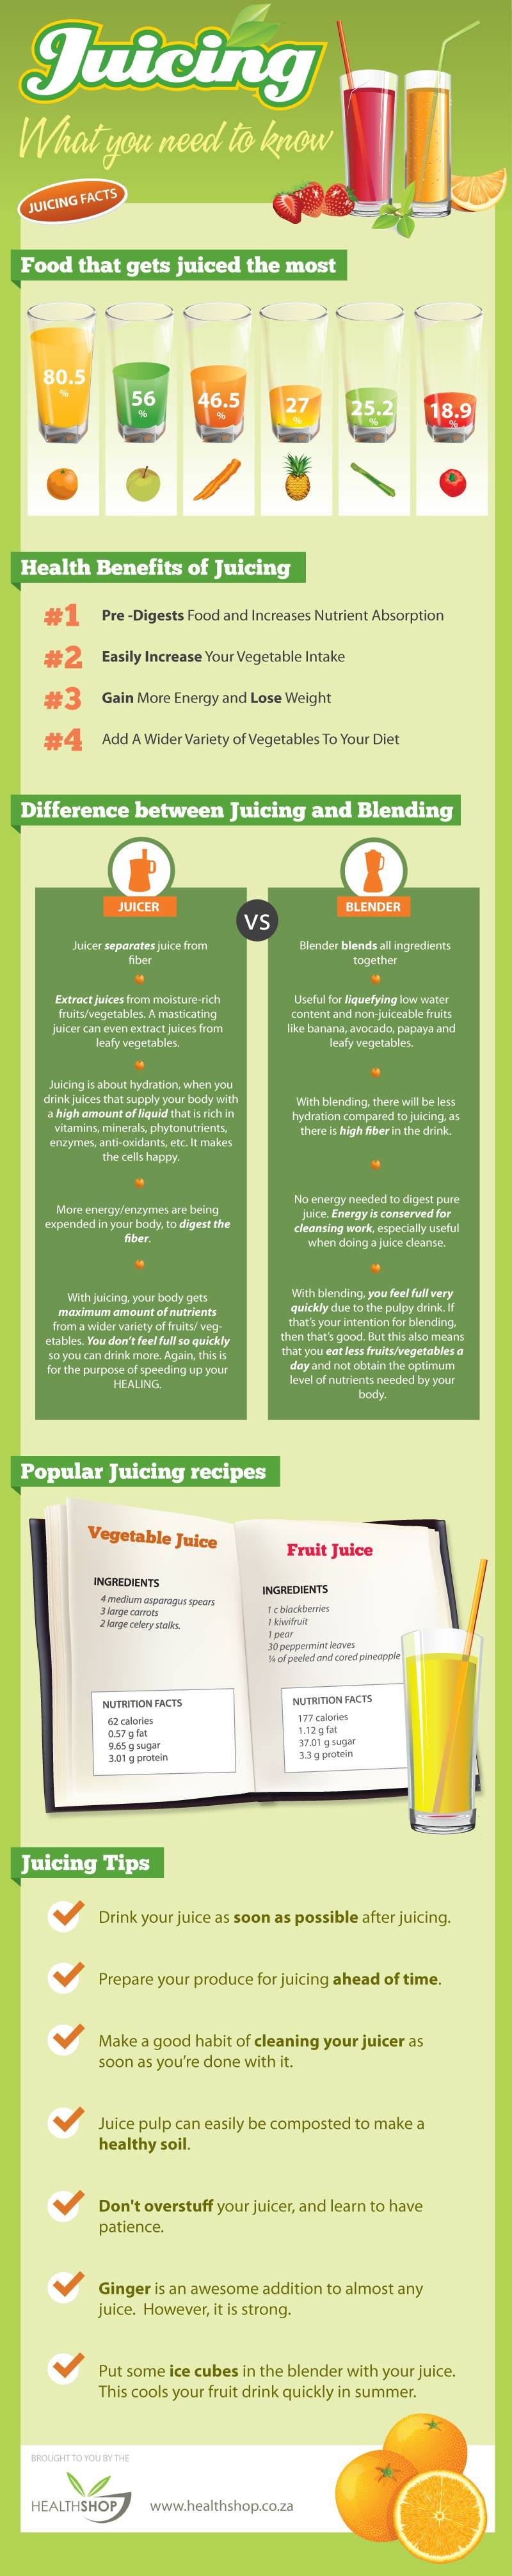 Juicing - What You Need To Know